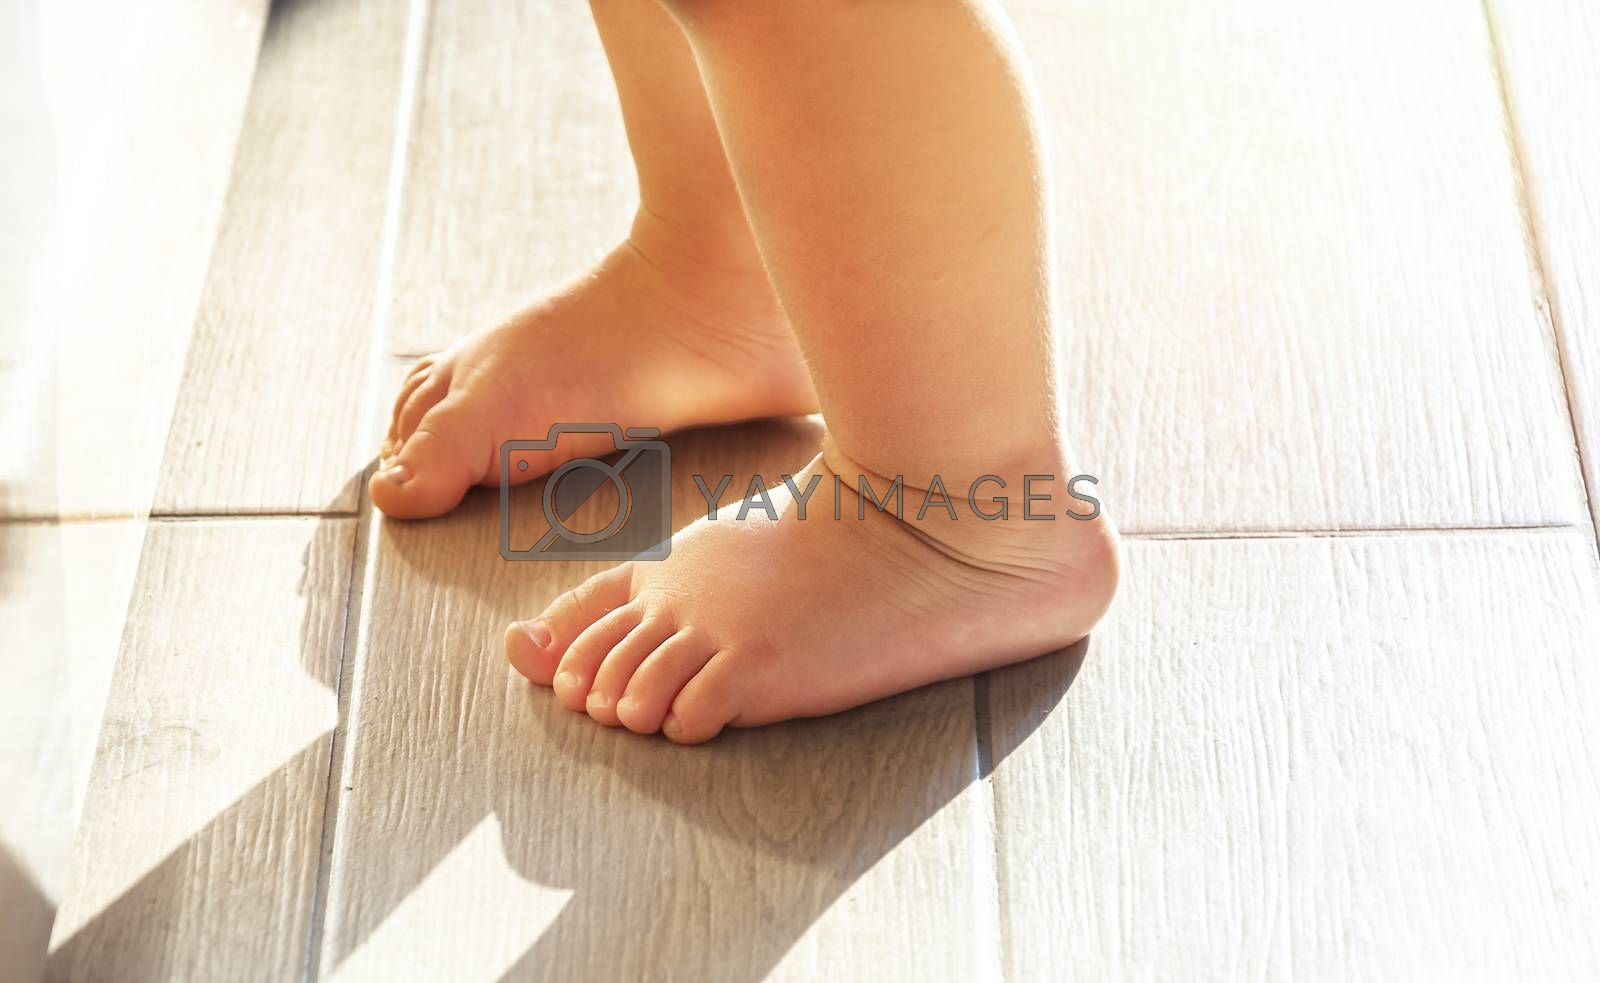 feet of a toddler learning to walk. Natural light. Interior day